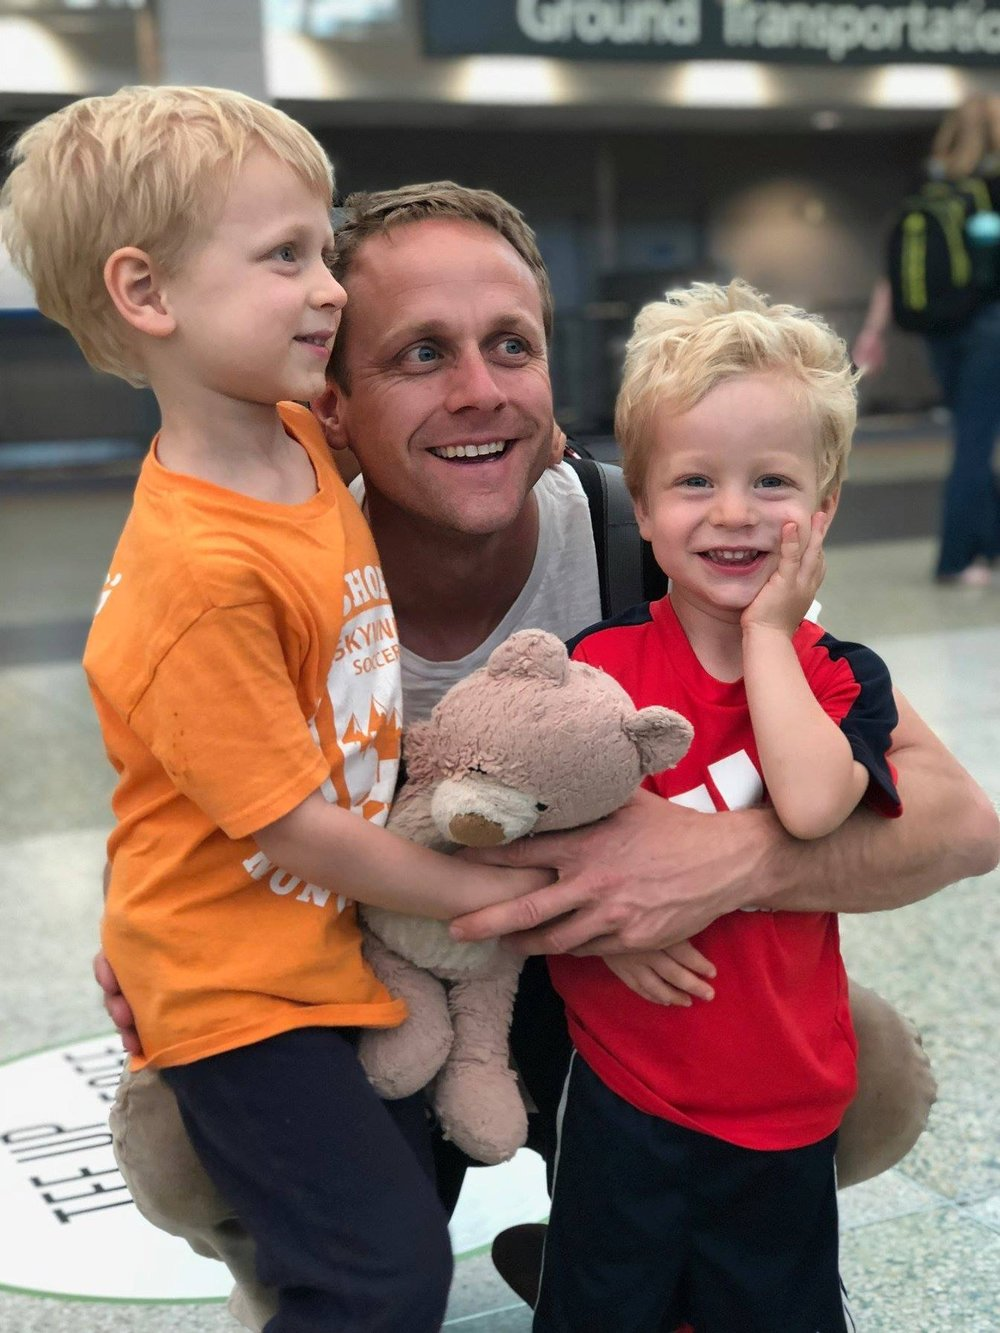 Toren and his sons Henry & George at DIA after Toren returned from reserve duty overseas